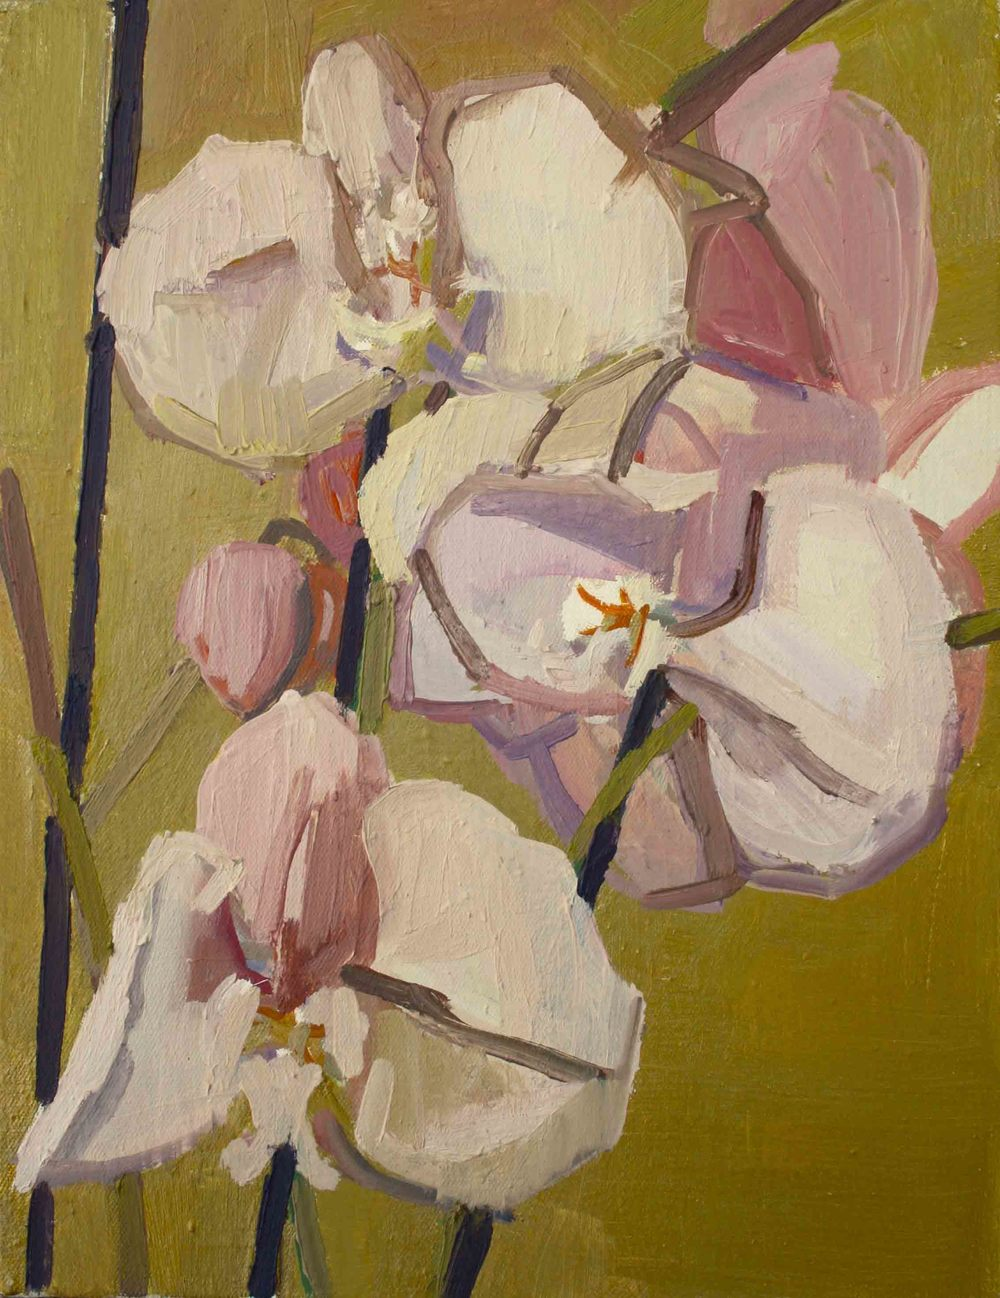 35 x 27 cm Pink Orchid I, Oil on Canvas